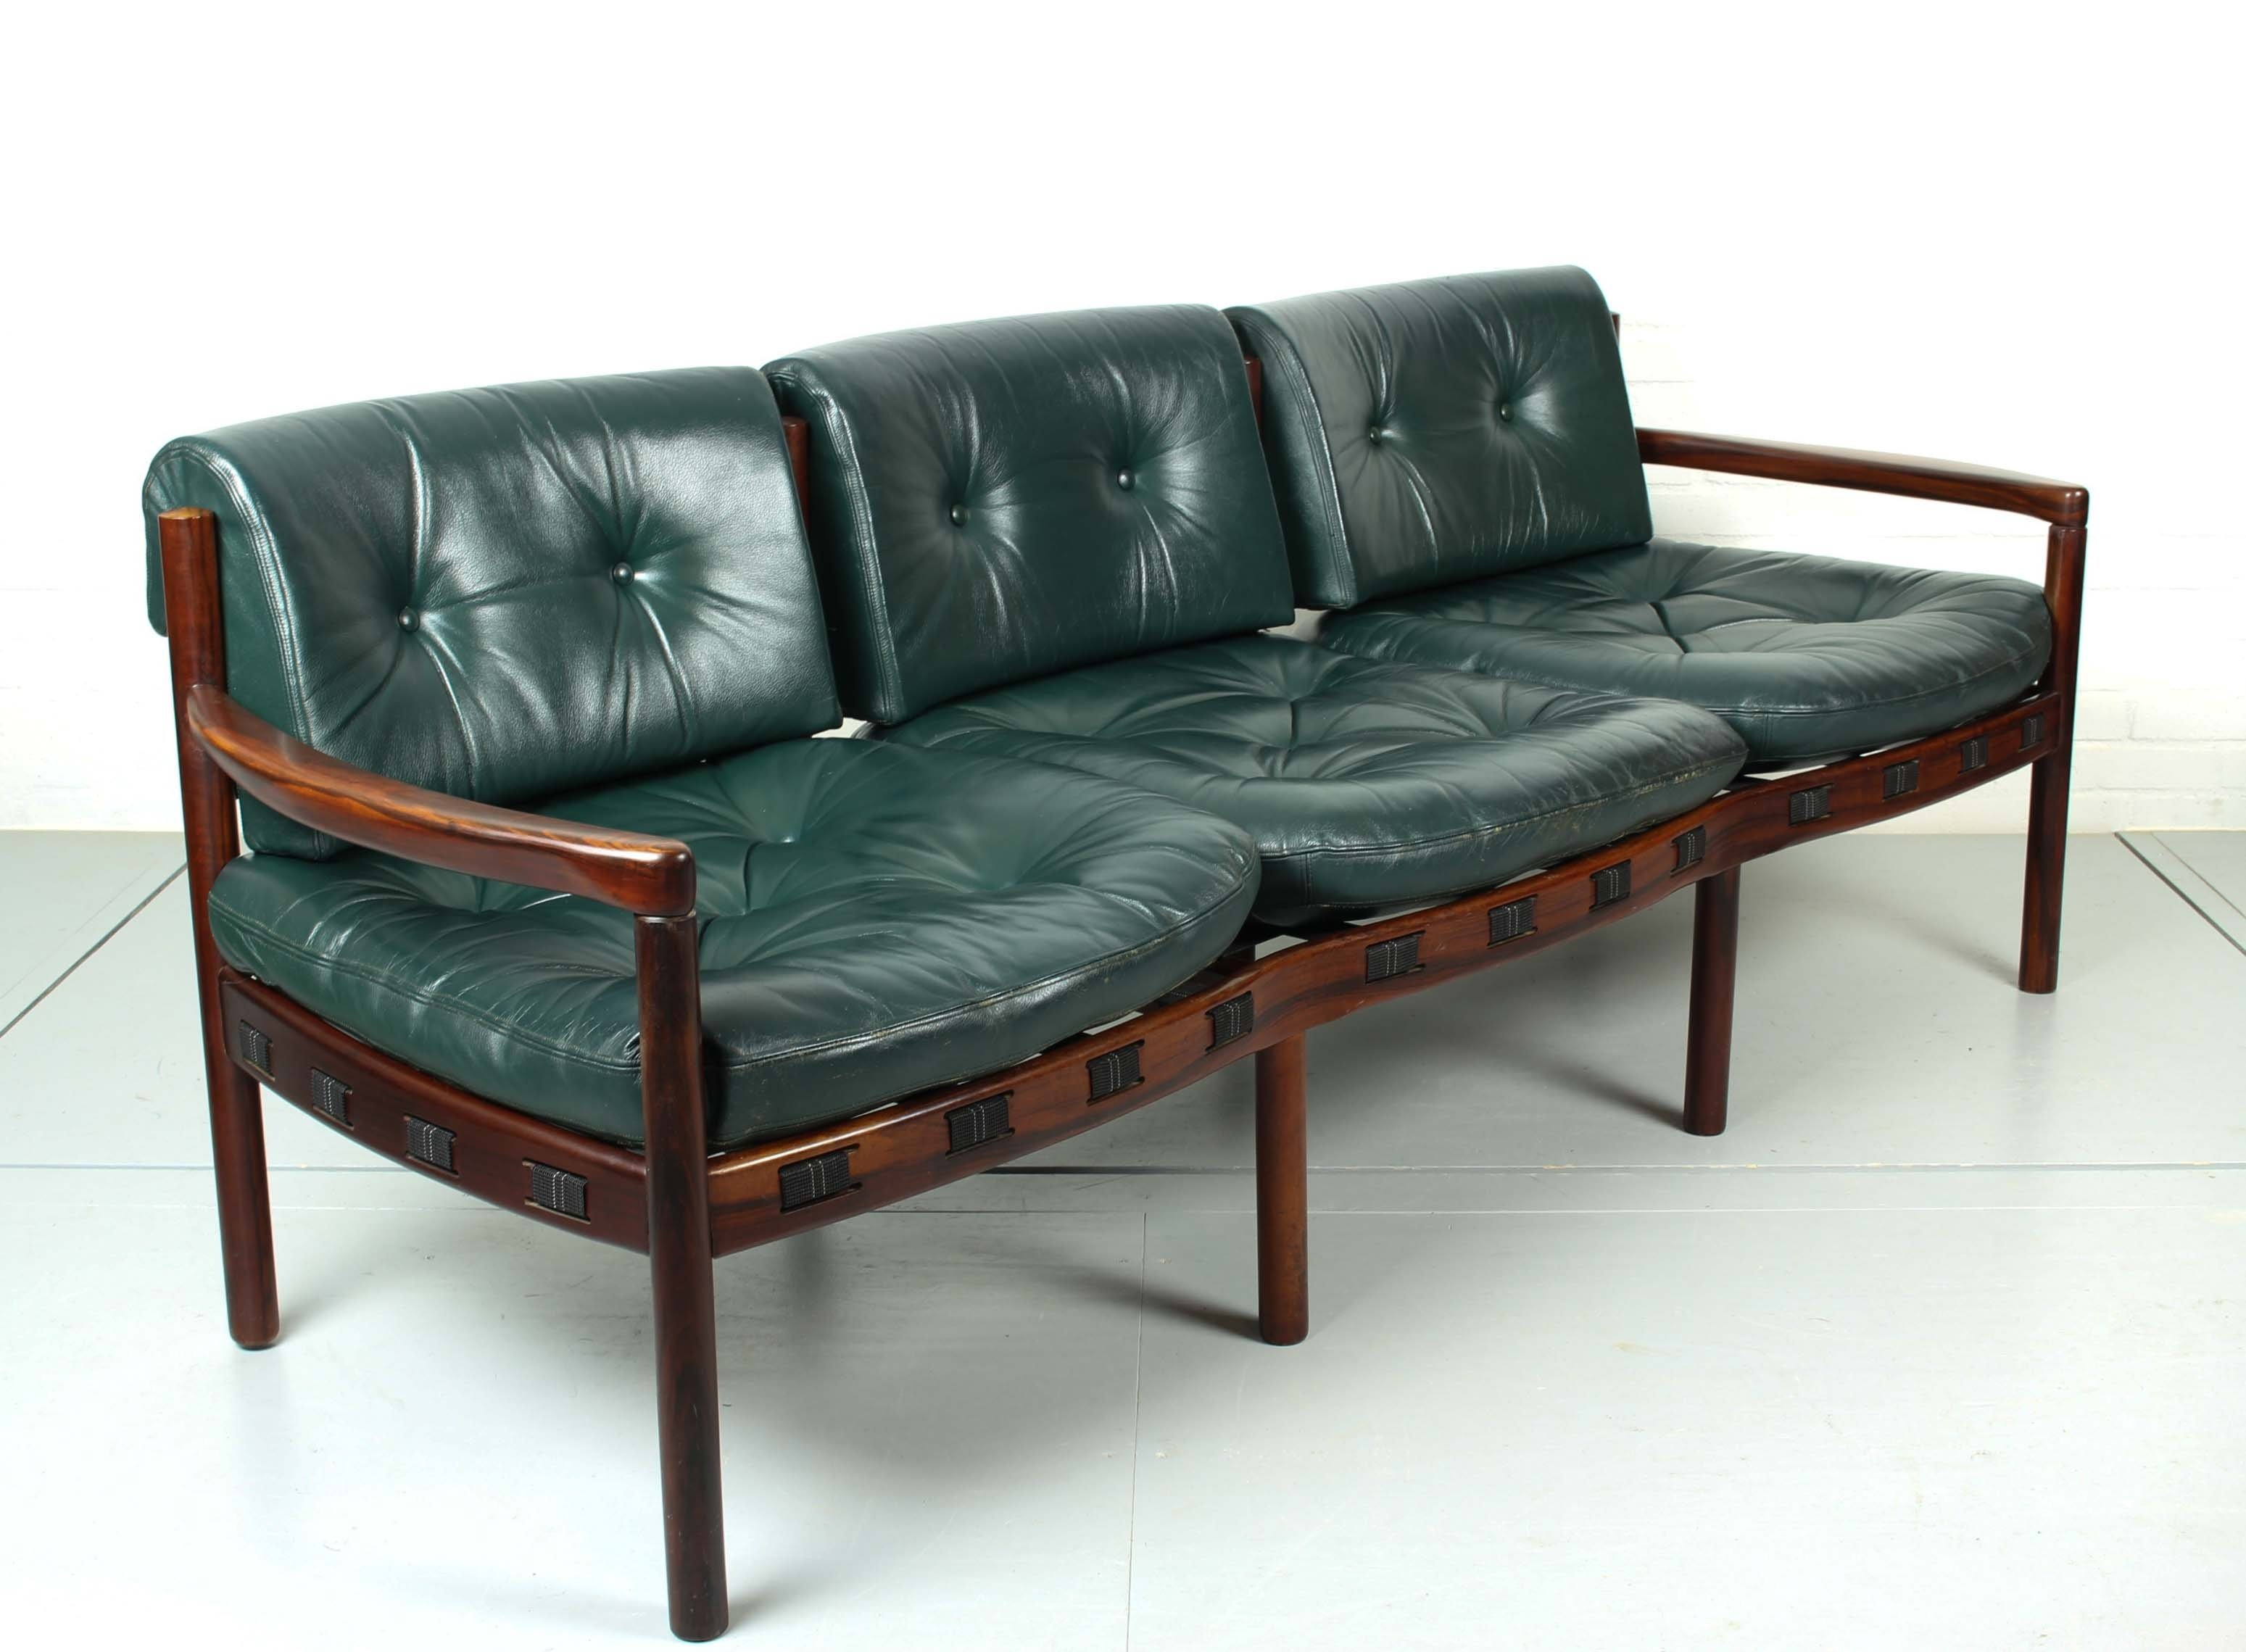 Three-seat Rosewood & Green Leather Sofa by Sven Ellekaer ...